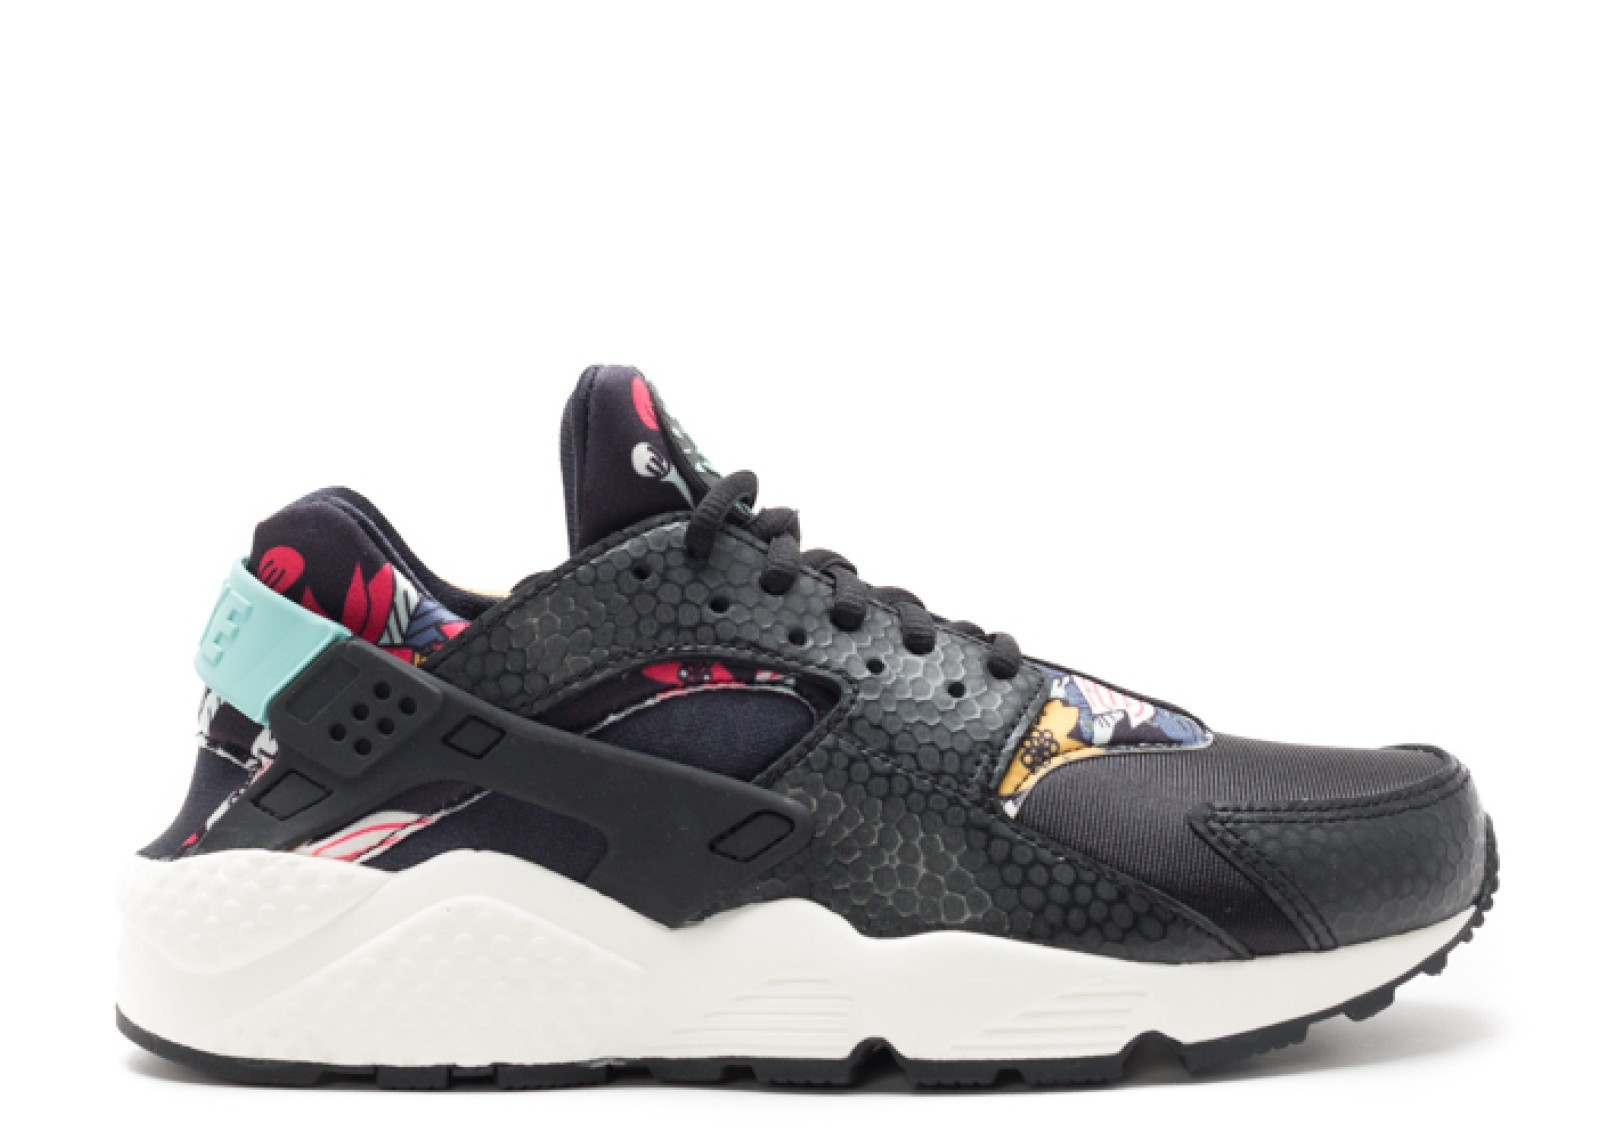 timeless design e593c e4534 Move your mouse over image or click to enlarge. Next. CLICK IMAGE TO ENLARGE.  Womens Air Huarache Run Print Aloha Pack ...